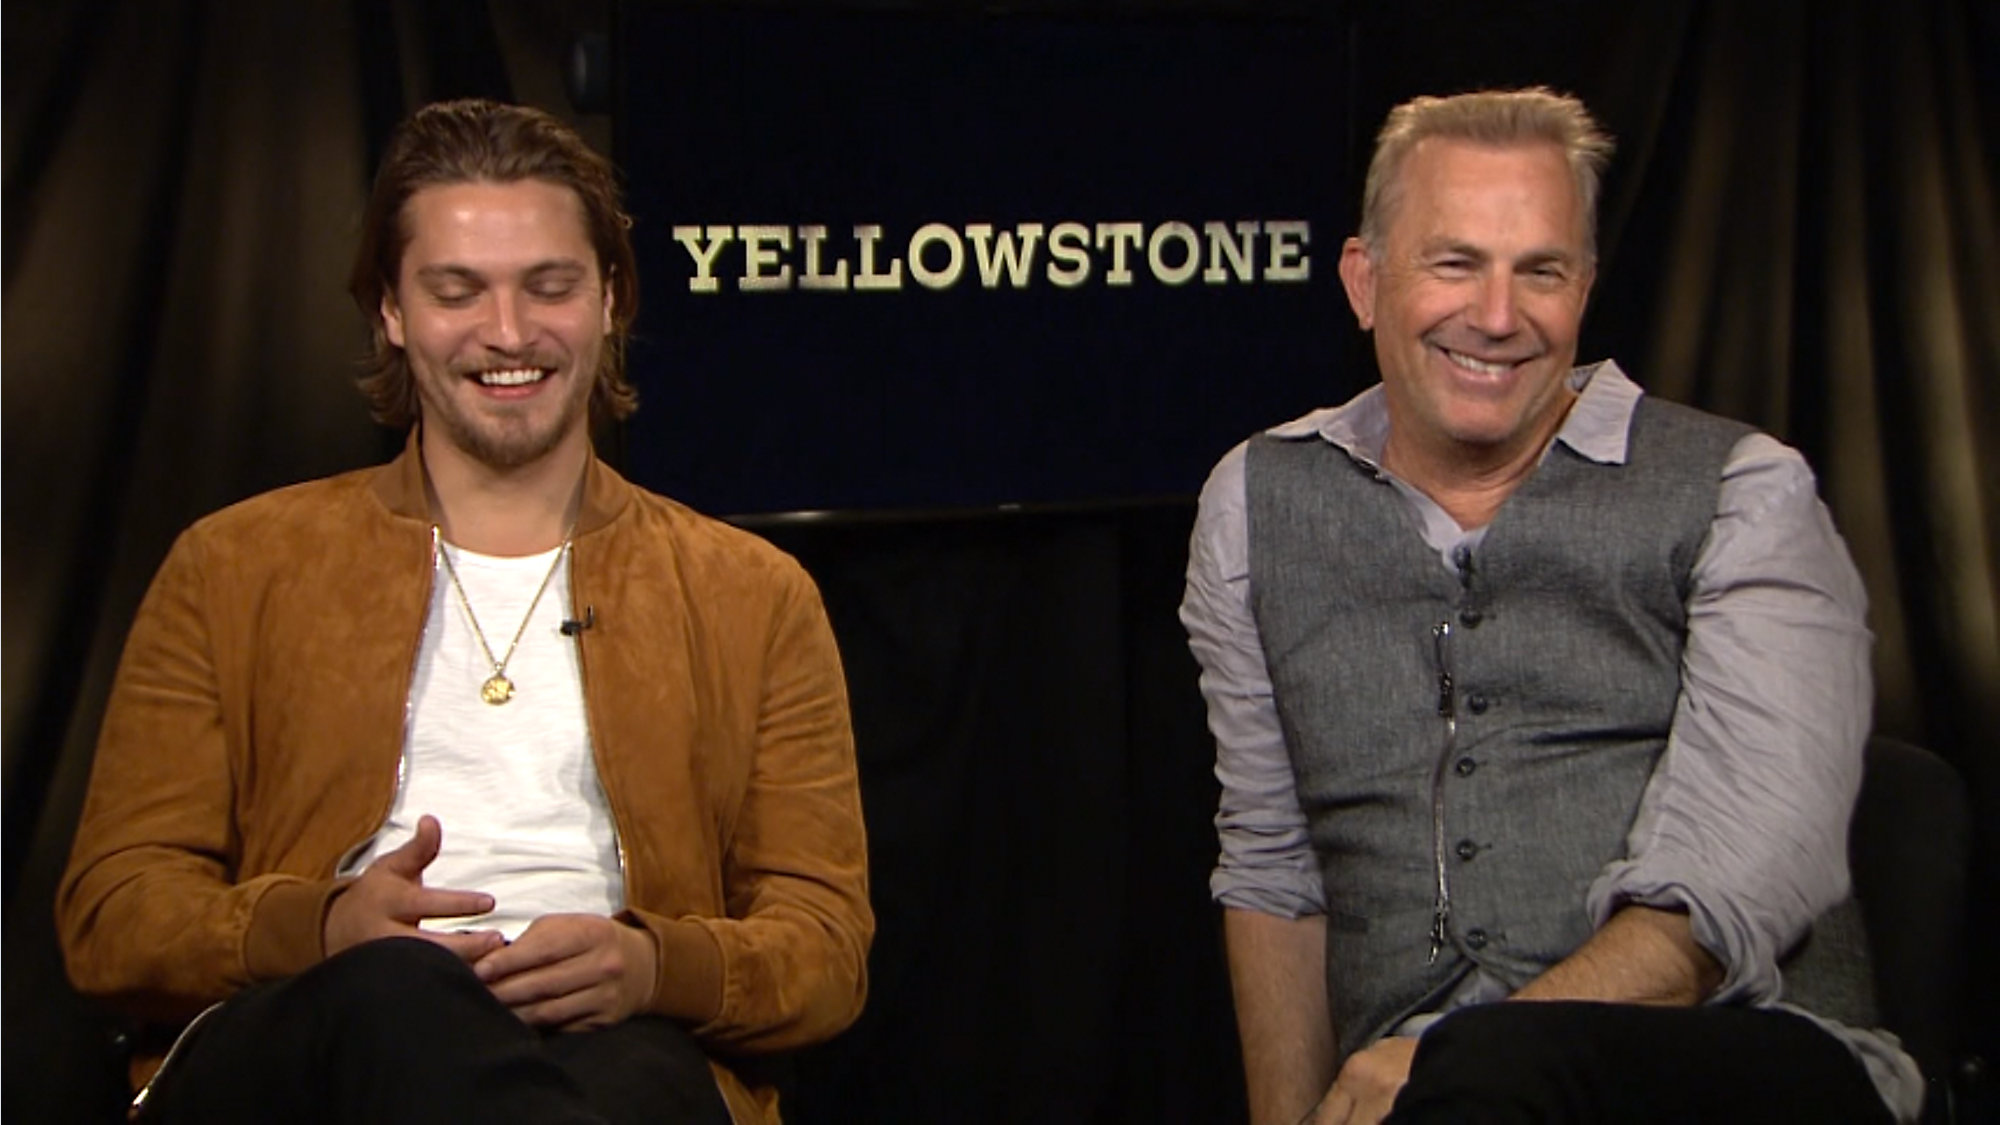 b166c4f6f41ba Kevin Costner and Luke Grimes discuss  Yellowstone  TV show